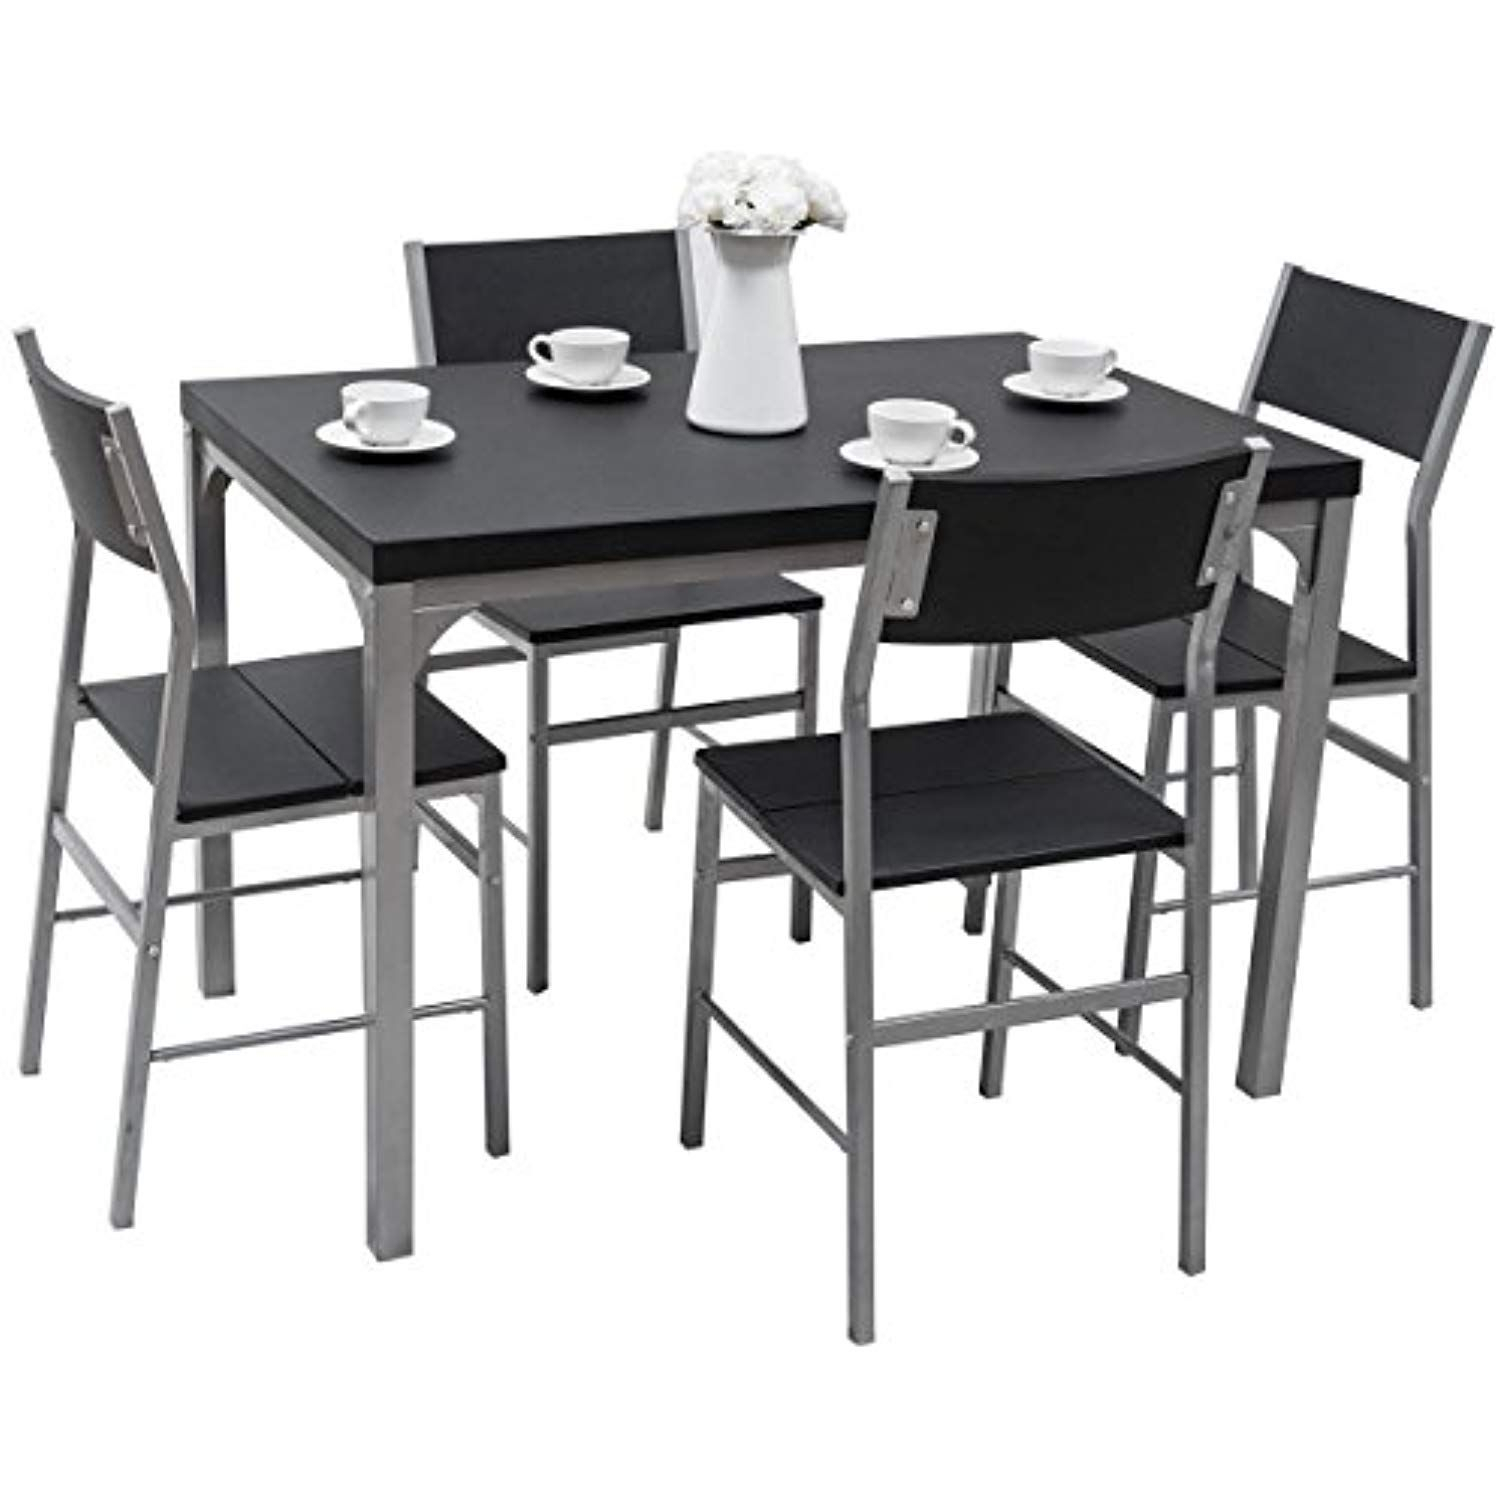 Tangkula Dining Table Set 5 Piece Home Kitchen Dining Room Tempered With Regard To Current Ephraim 5 Piece Dining Sets (View 2 of 20)